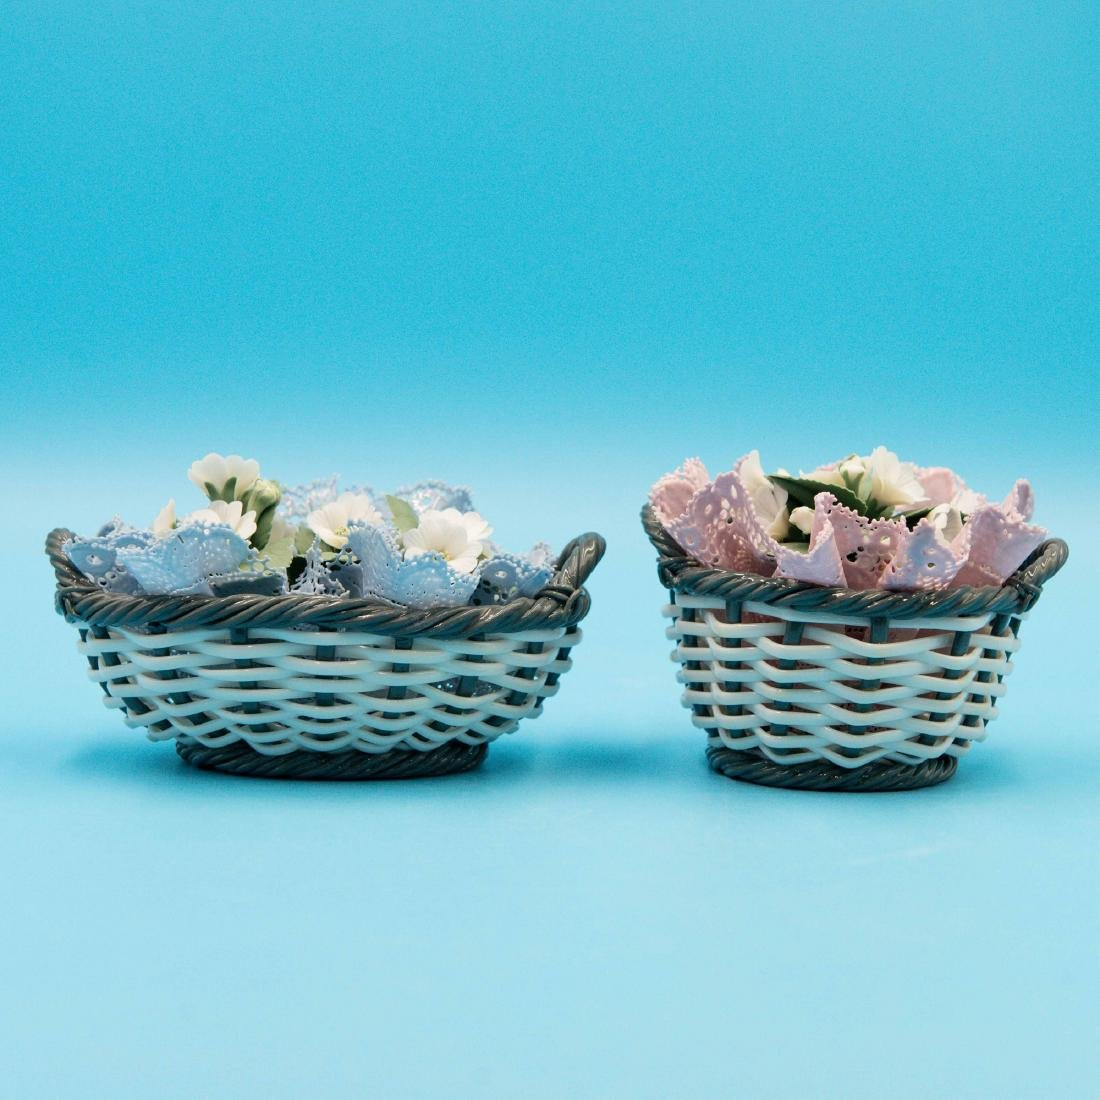 LLADRO 2 SMALL PORCELAIN FLOWER BASKETS